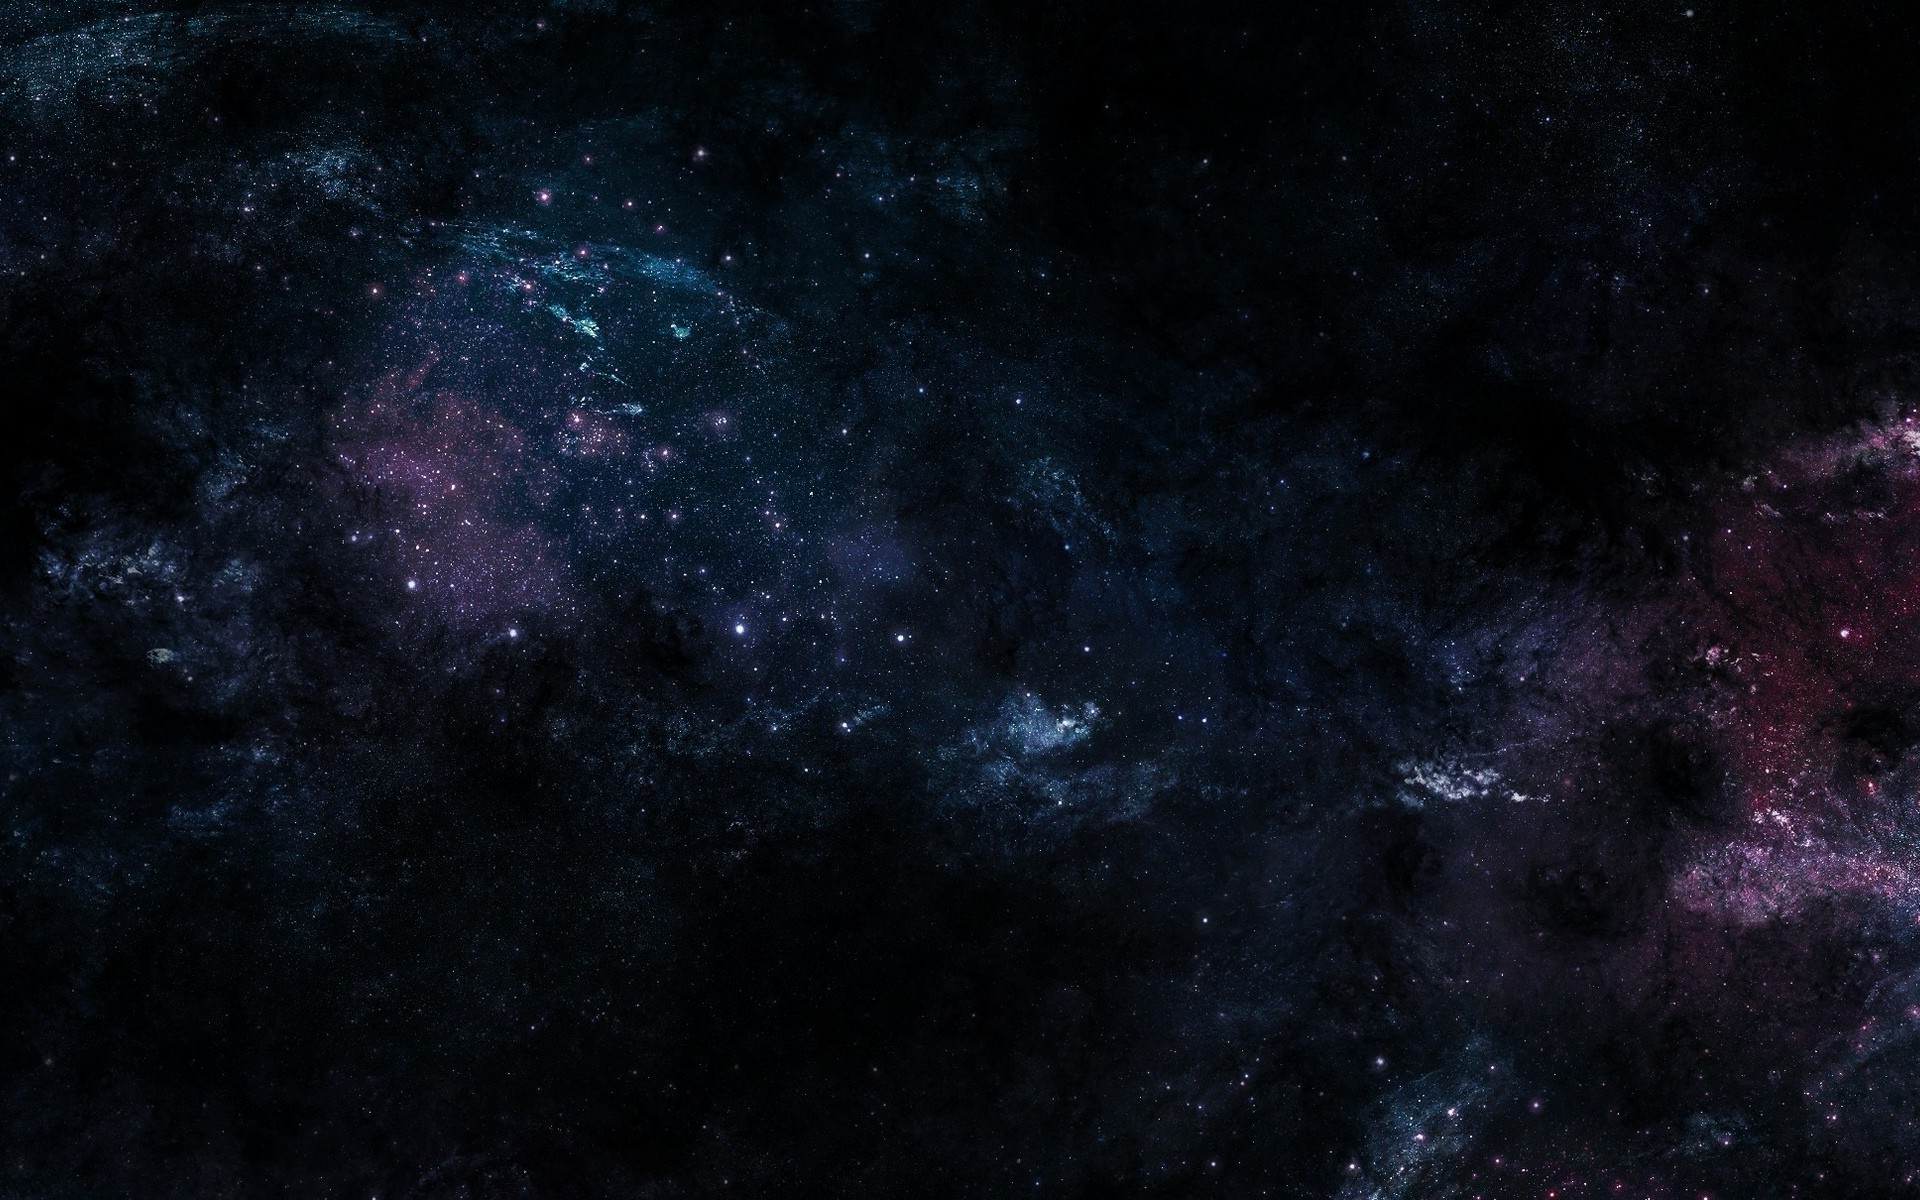 nebula-space-hd-wallpapers-1920x1200 | wallpaper.wiki